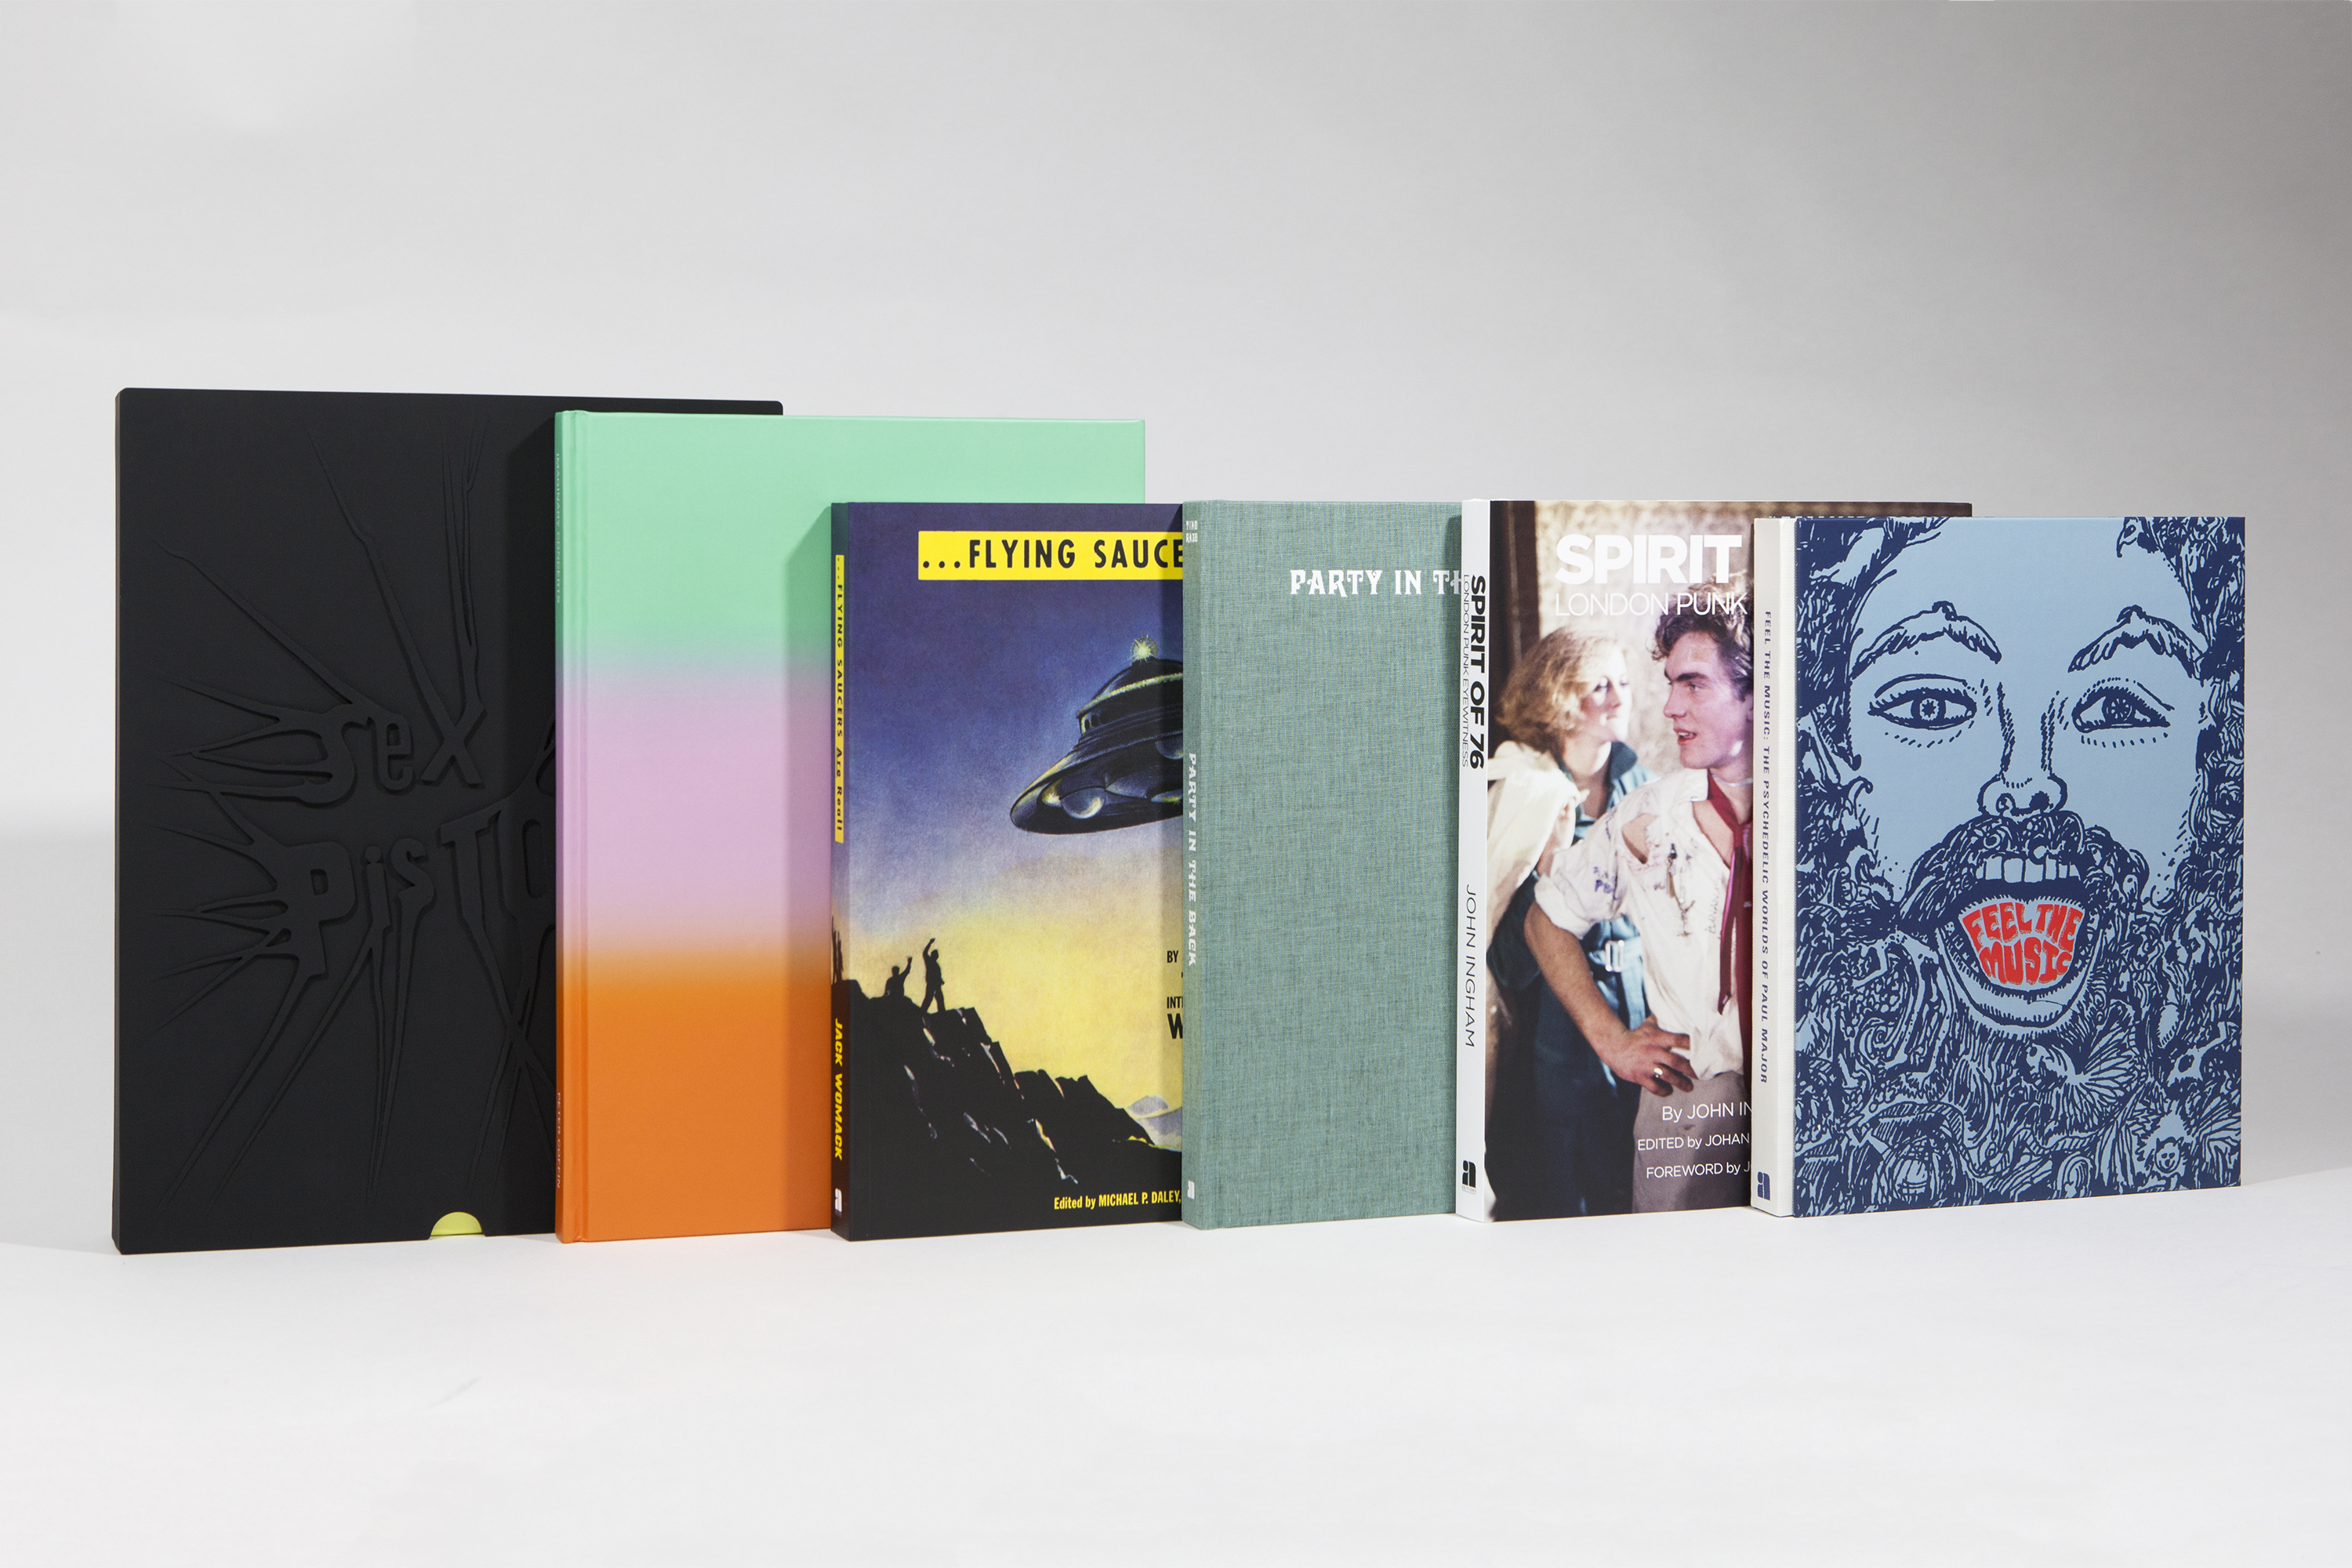 Anthology editions rough trade potm r2 1